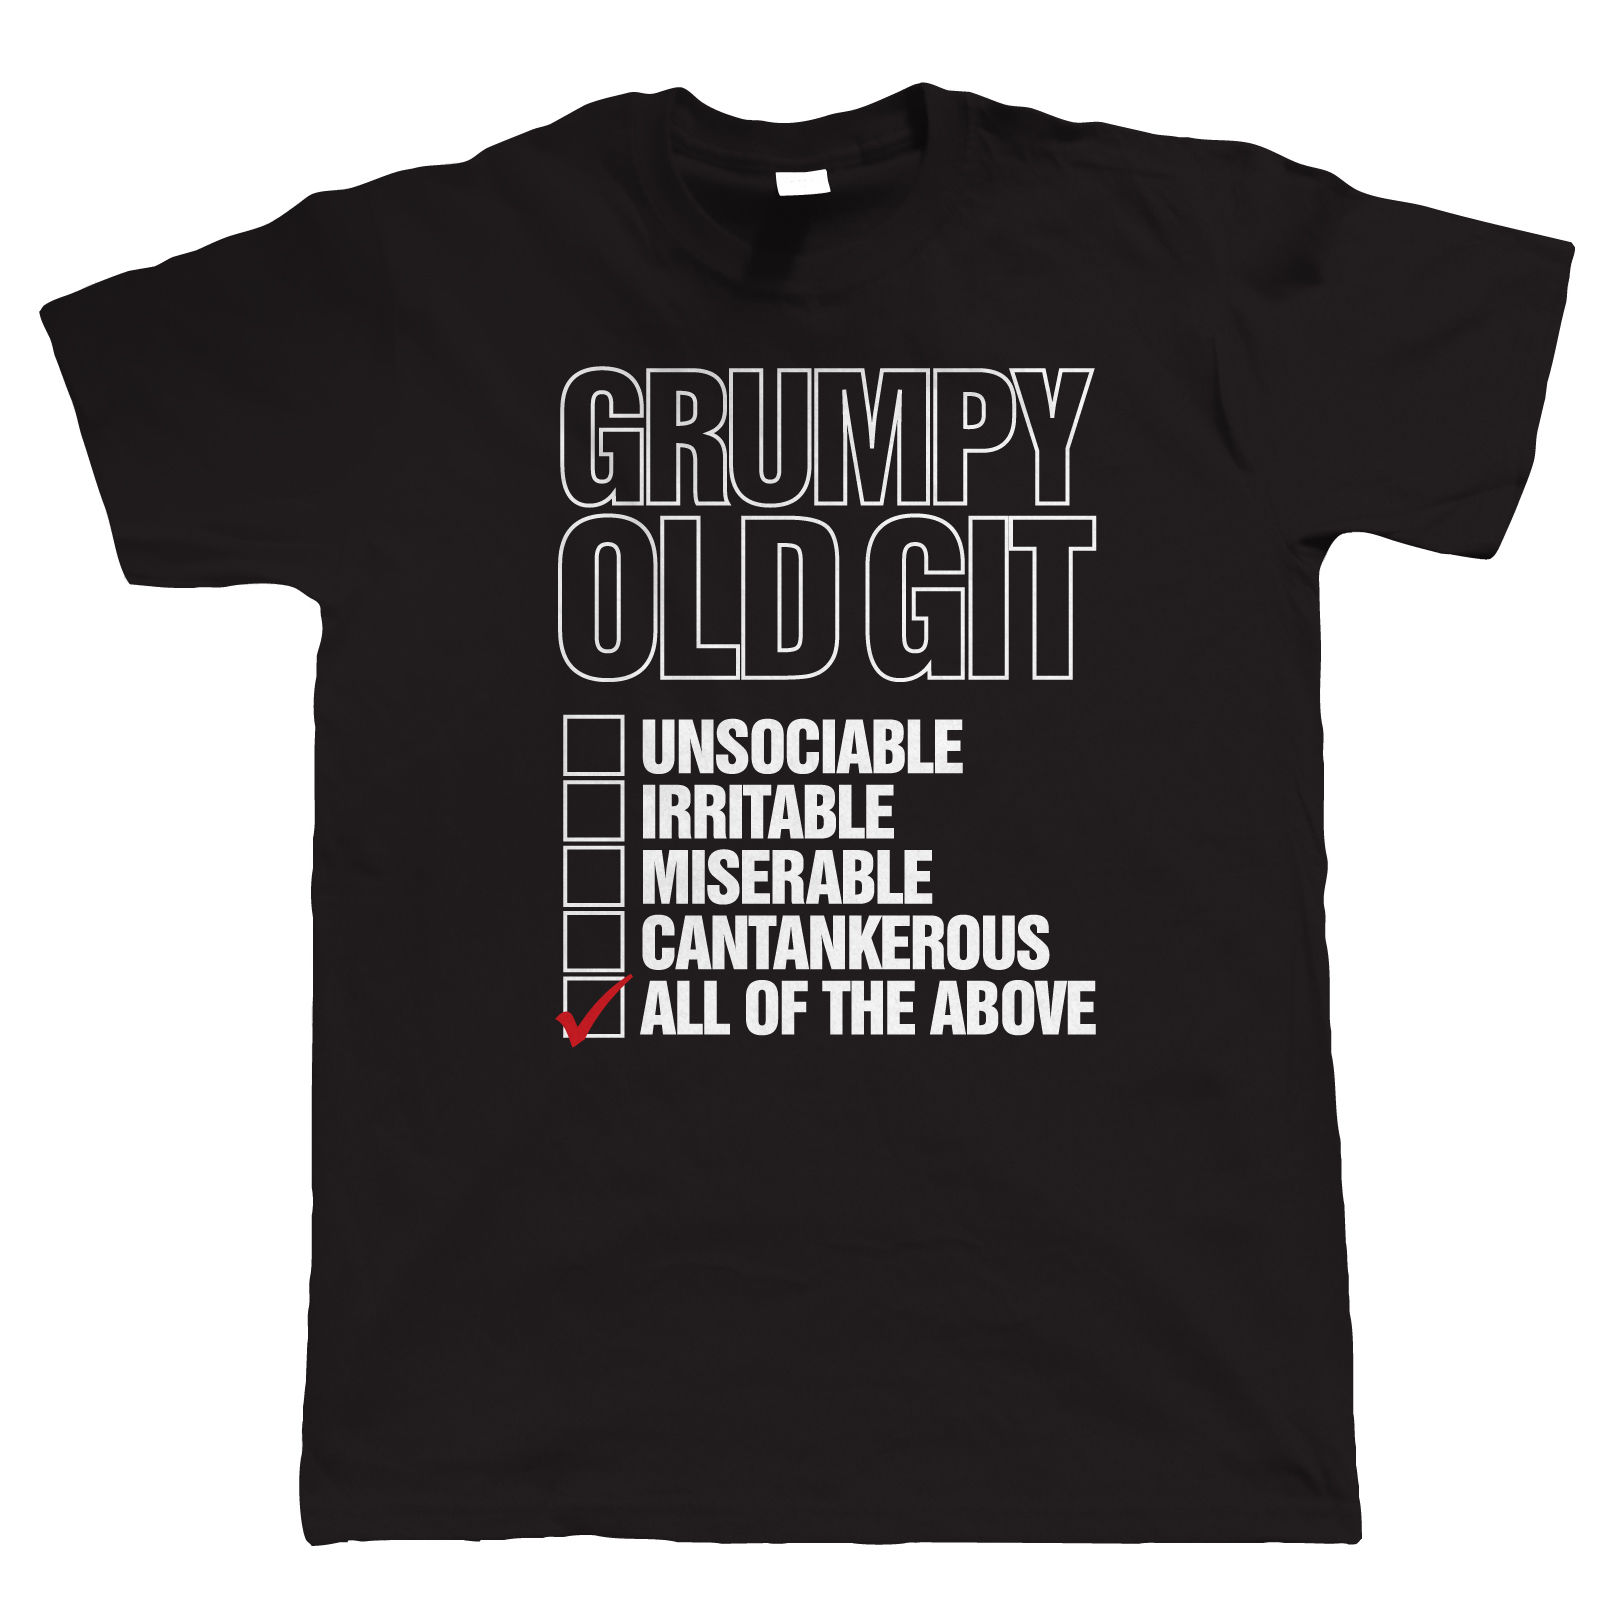 Git grumpy old man checklist, t-shirt funny man ...